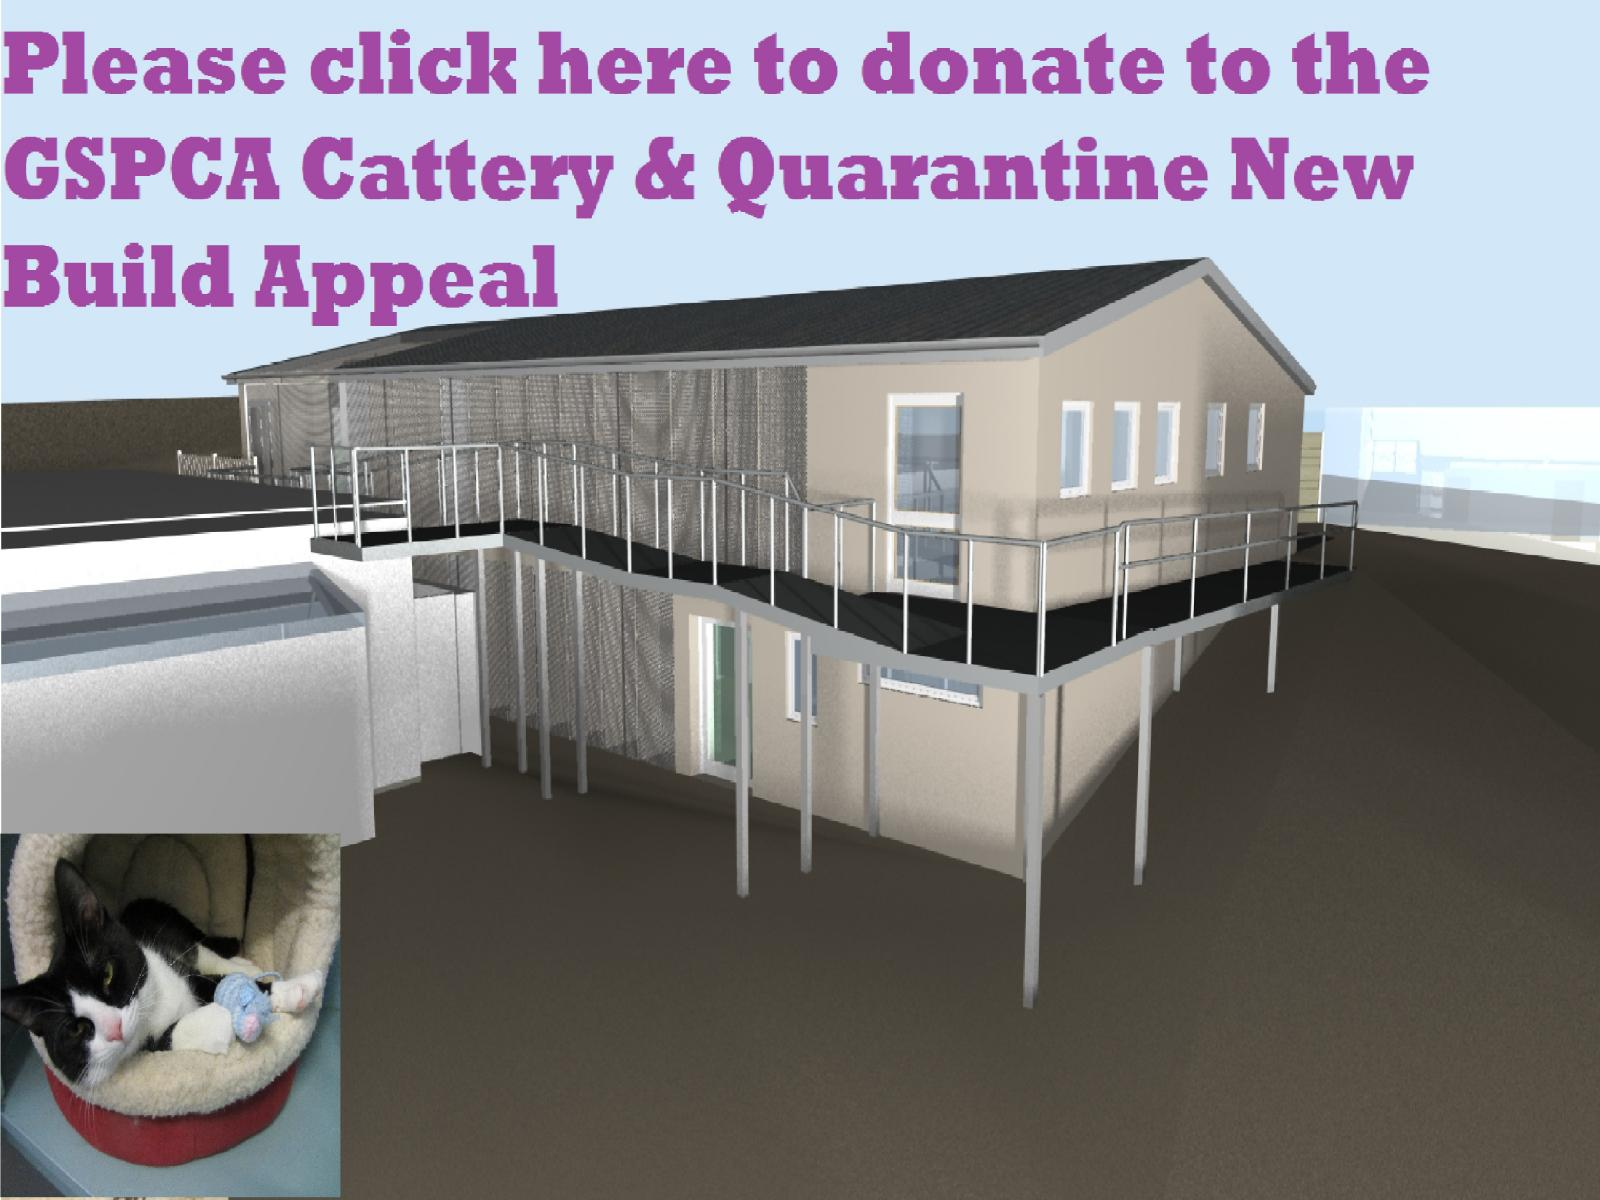 To help donate to our Cattery & Quarantine Appeal please click here